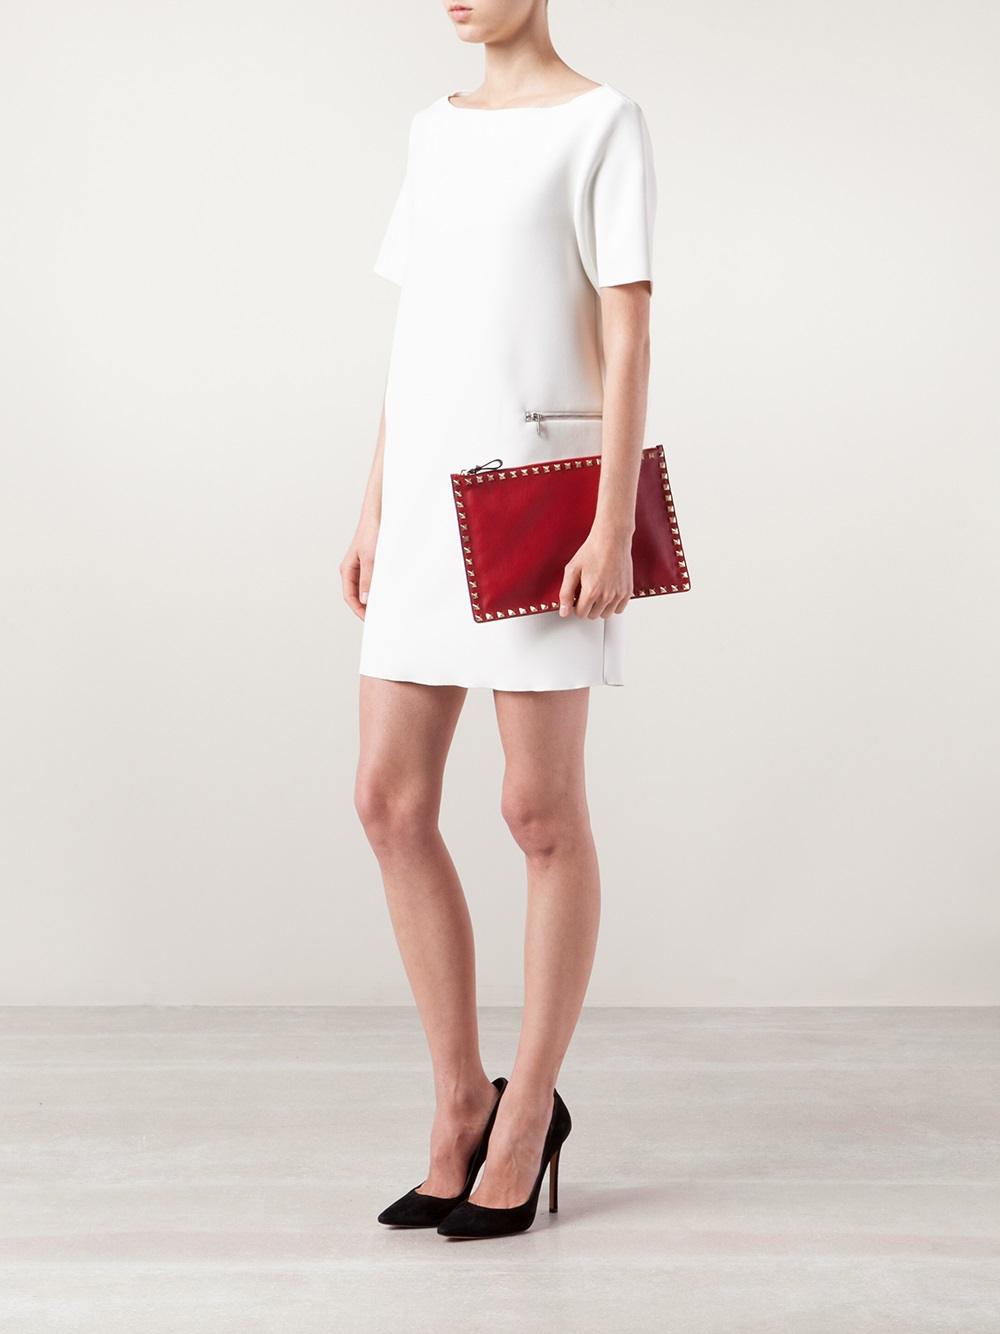 ce6a36c141 Valentino Rockstud Large Flat Clutch in Red - Lyst